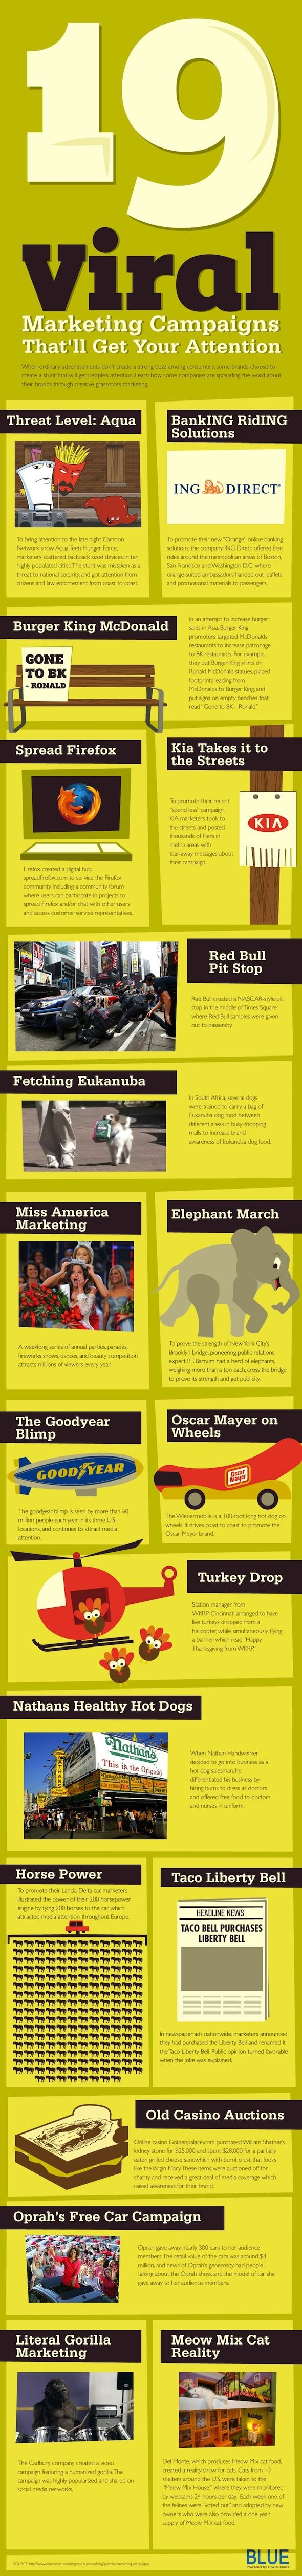 19 Viral Marketing Stories Sure To Get Your Company Rocking To The Top [Infographic] #infographic #casestudy #marketinginfographic #marketingstrategy #viralstories